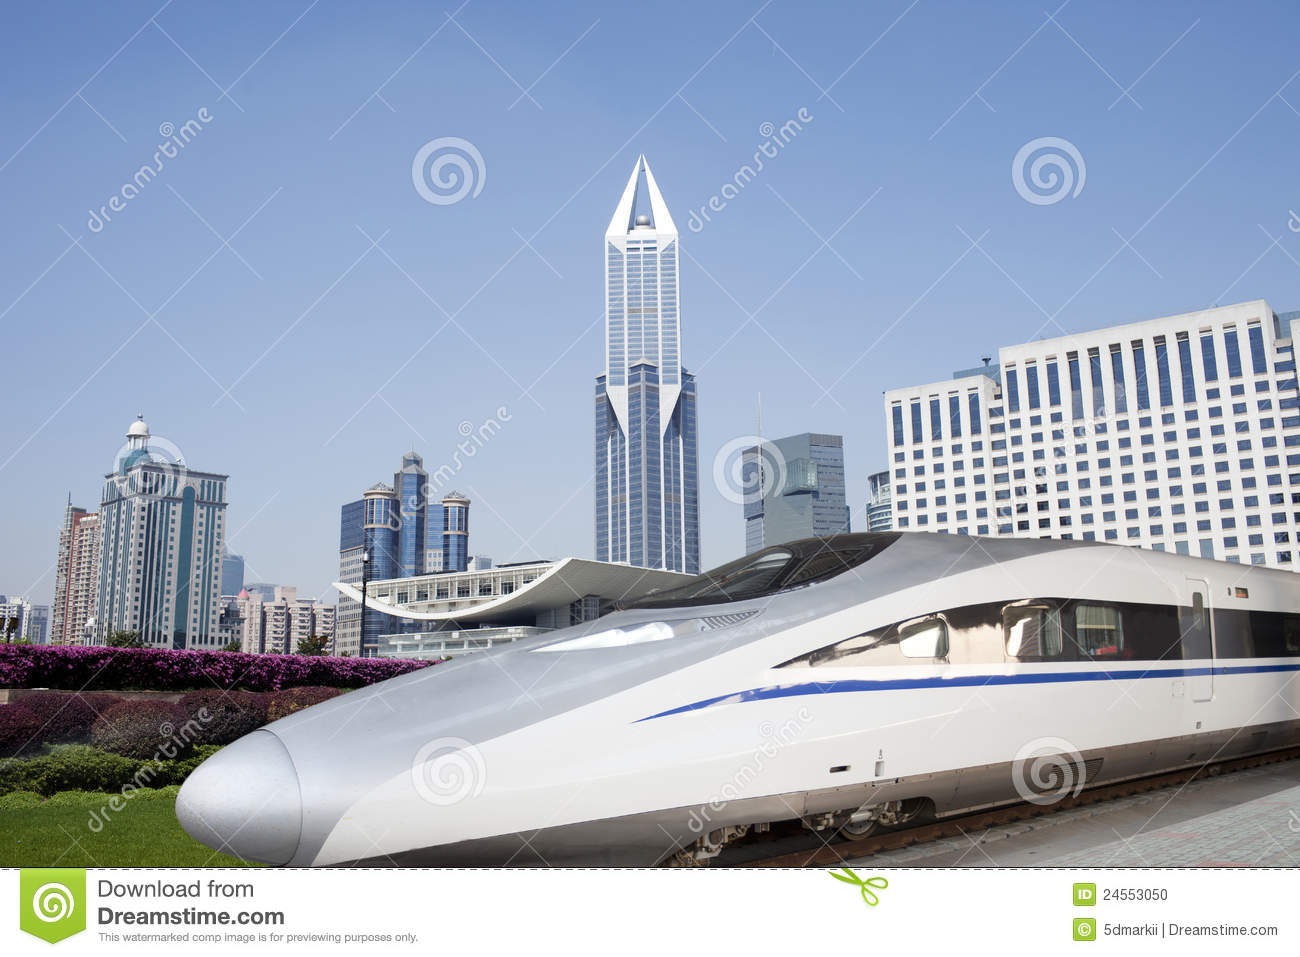 China High Speed Train At Shanghai Stock Photo - Image: 24553050